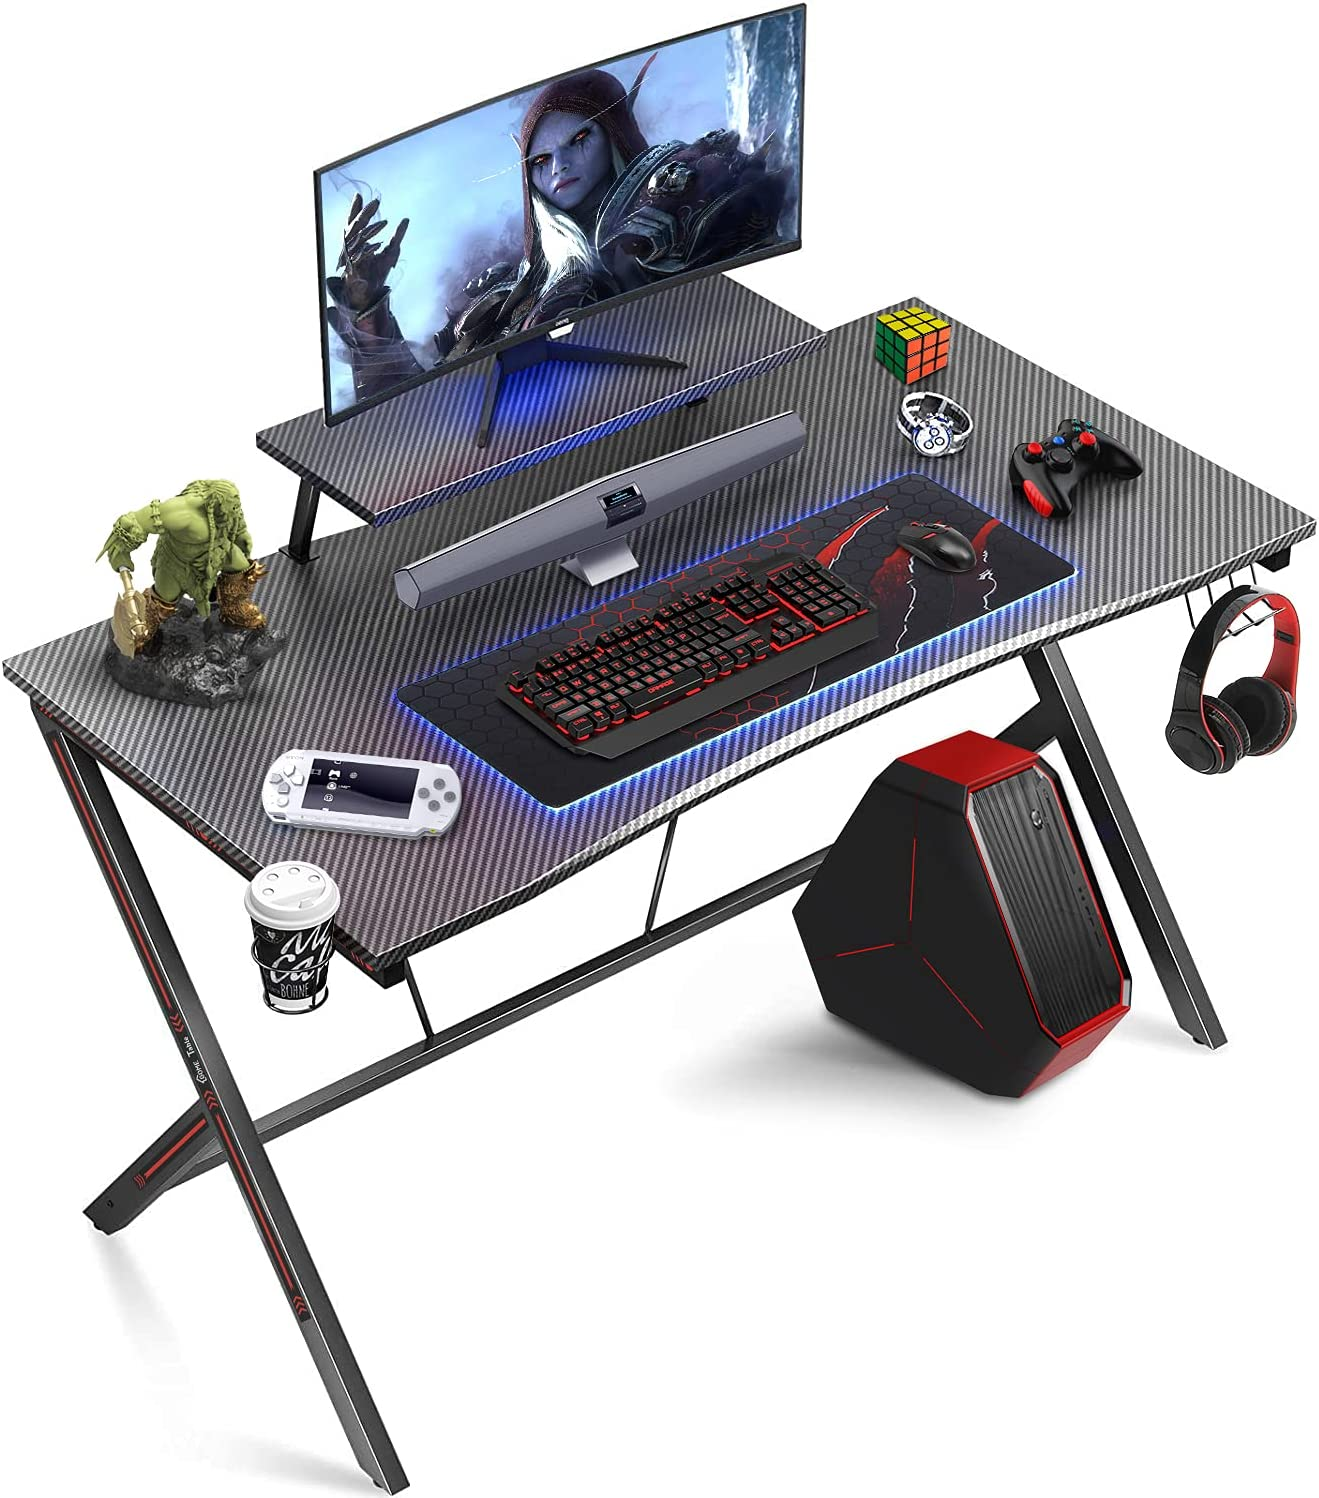 Gome Gaming Computer Desk for Home Office - 47